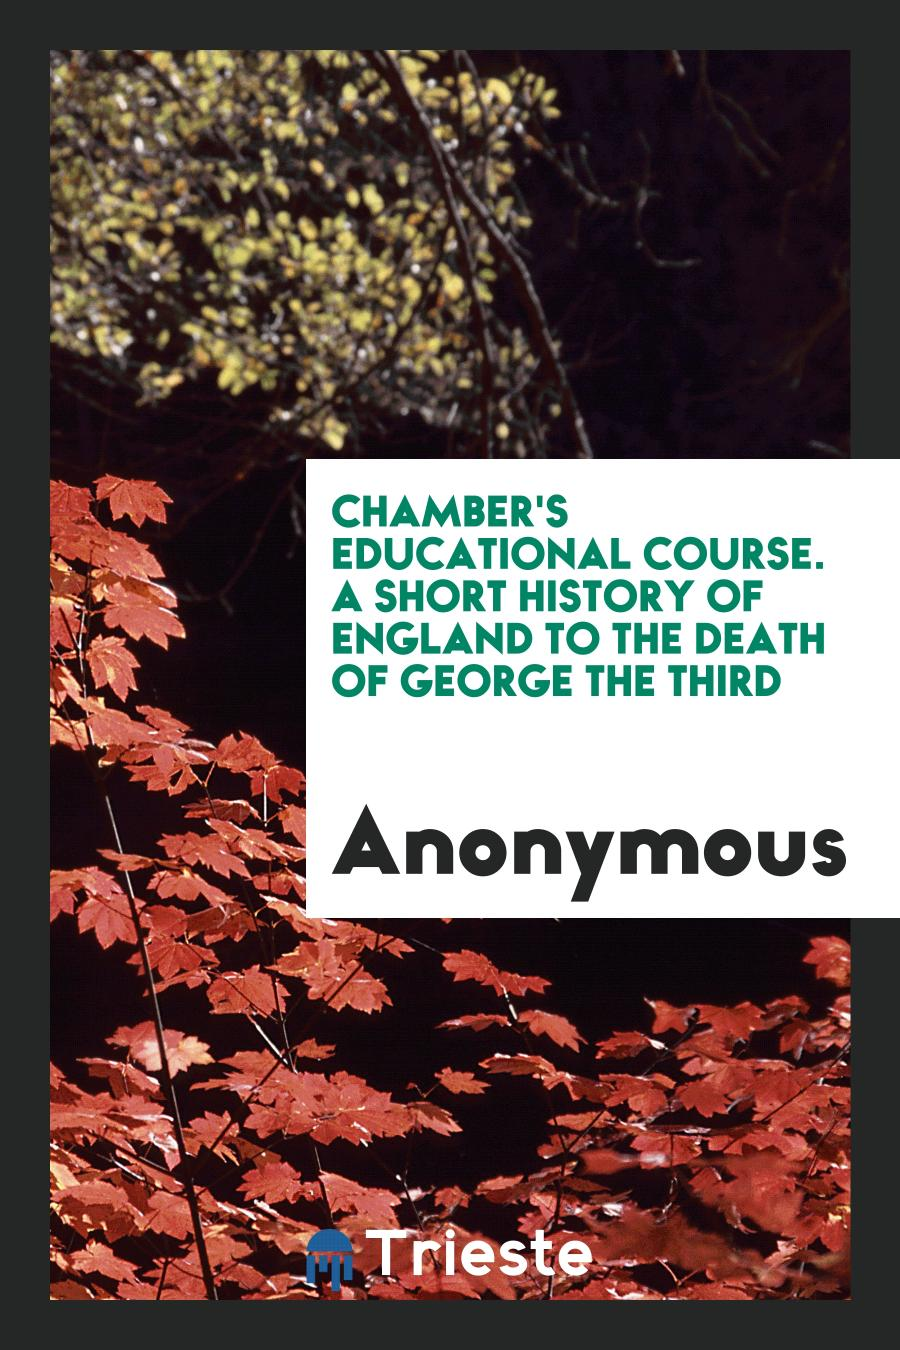 Chamber's Educational Course. A Short History of England to the Death of George the Third